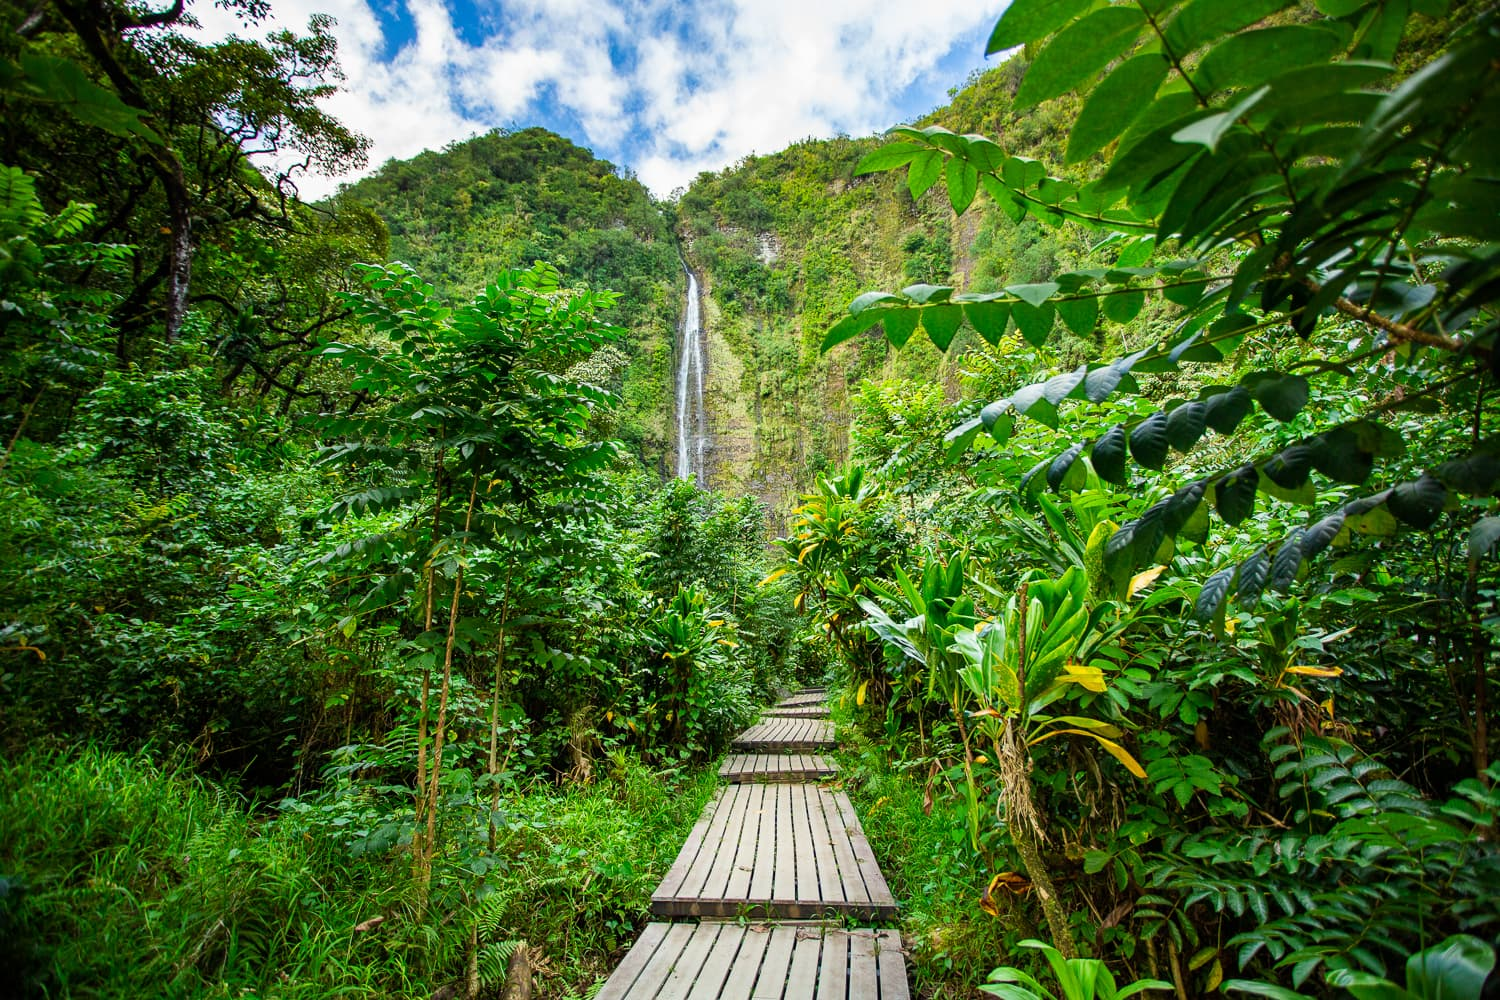 view of Waimoku falls with jungle on either side of a central boardwalk.